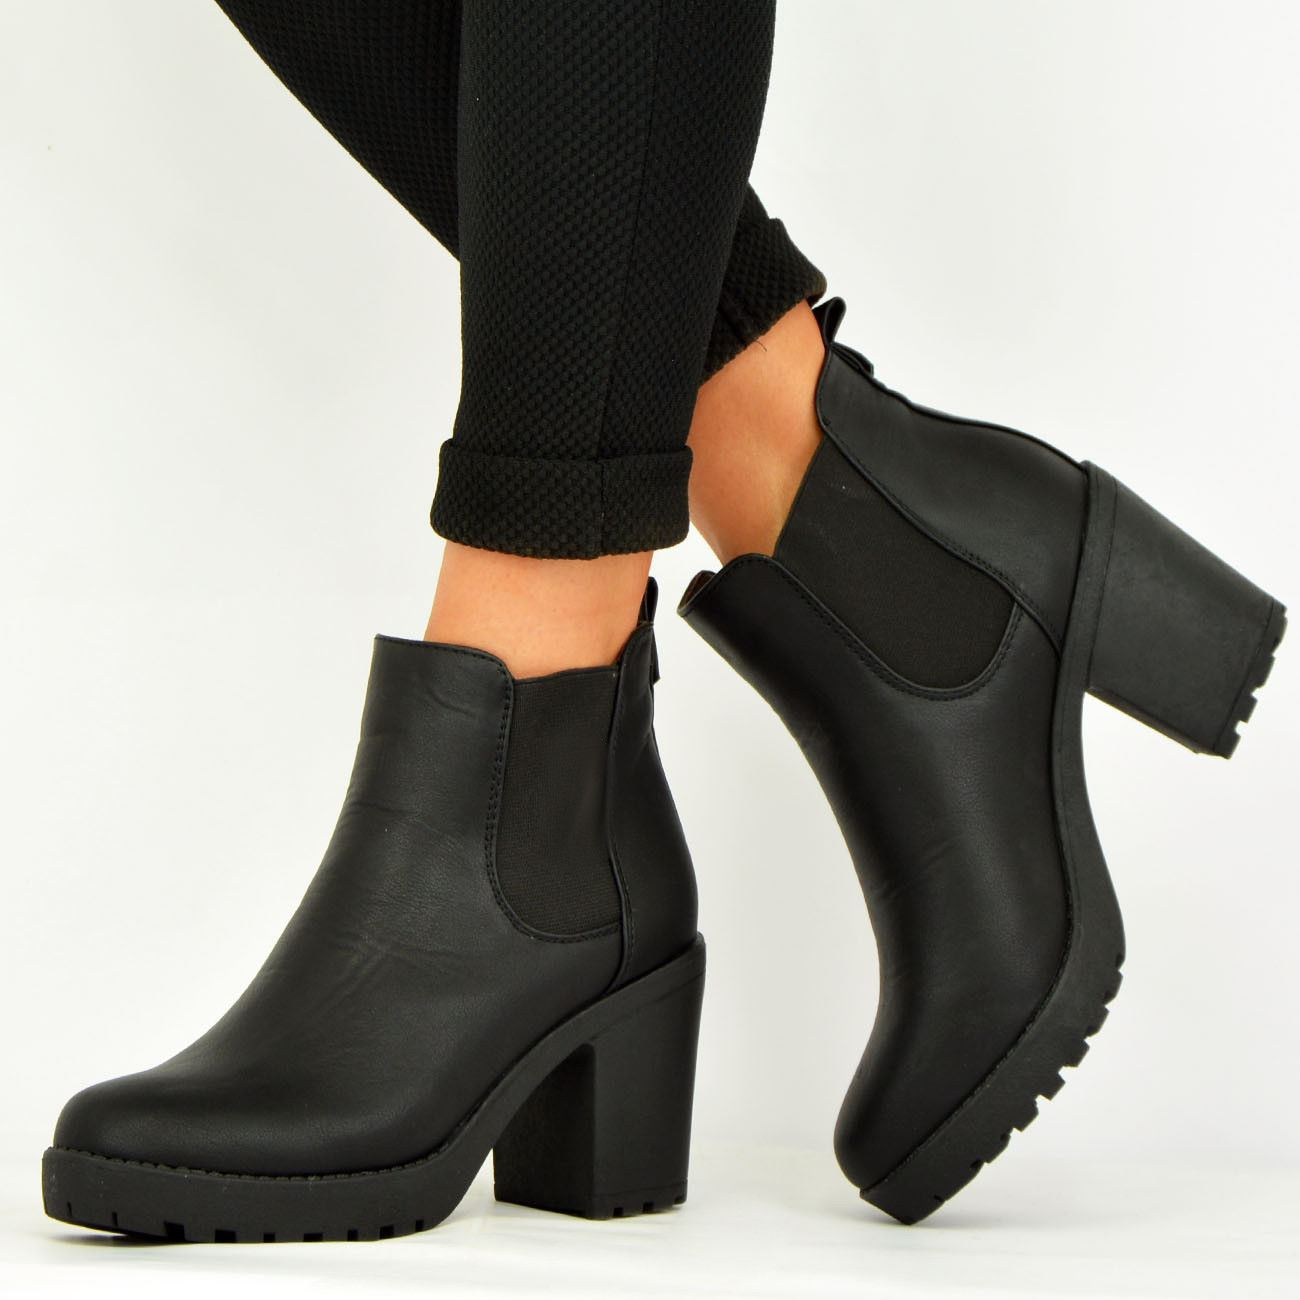 LADIES-WOMENS-ANKLE-CHELSEA-BOOTS-CHUNKY-BLOCK-HEELS-PLATFORM-SHOES-SIZE-UK-3-8 thumbnail 4